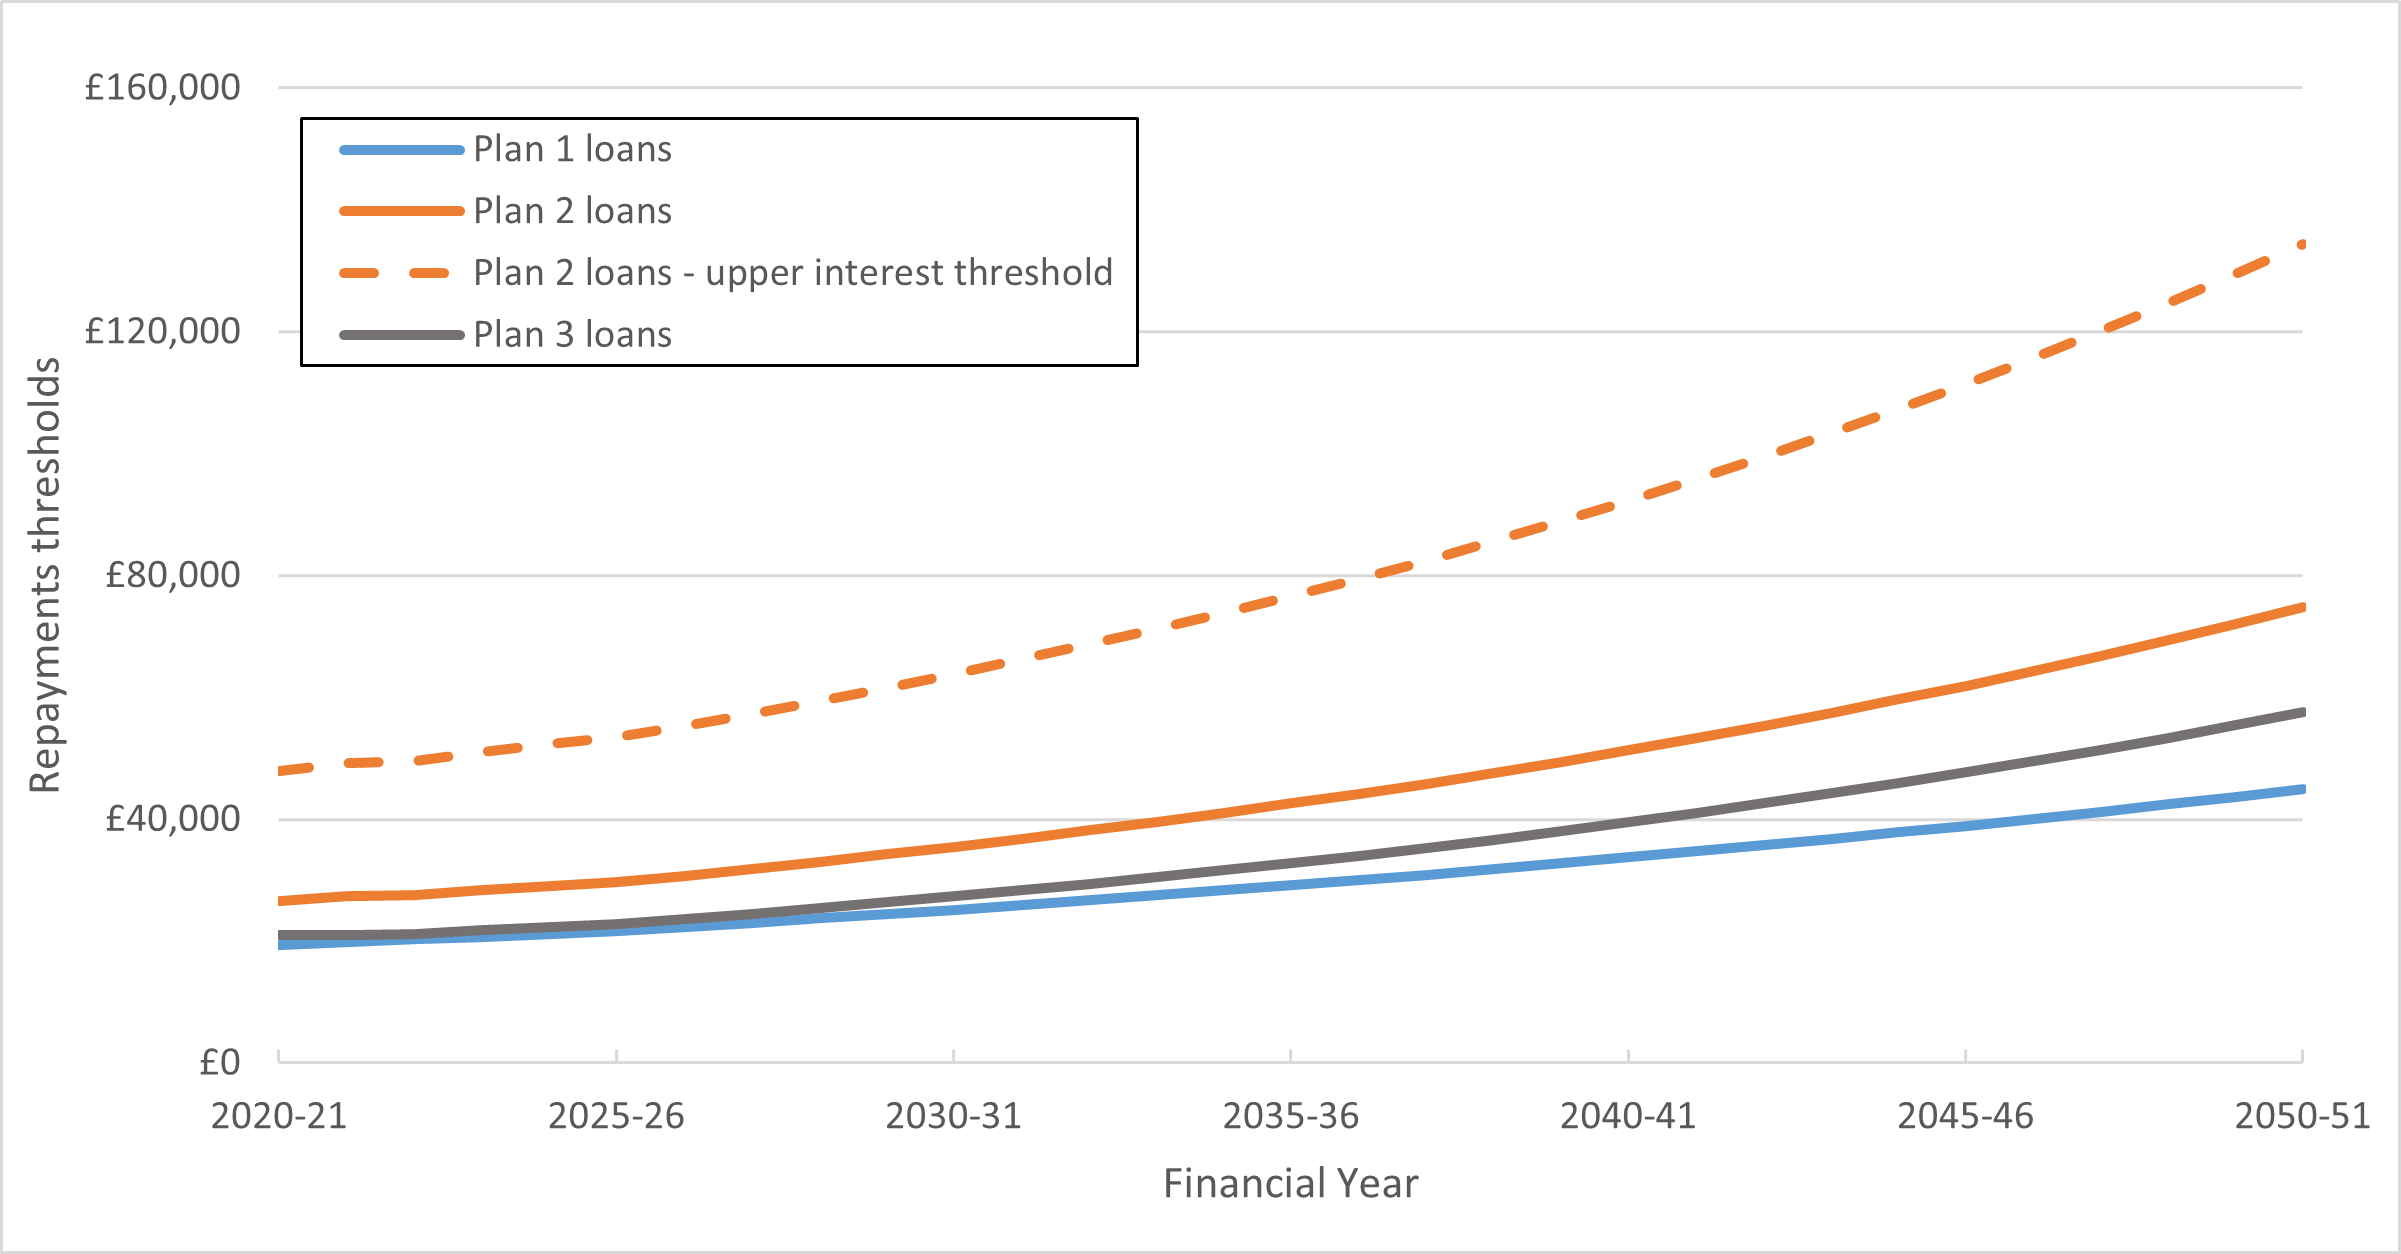 Repayment threshold for Plan 1, 2 and 3 loans.